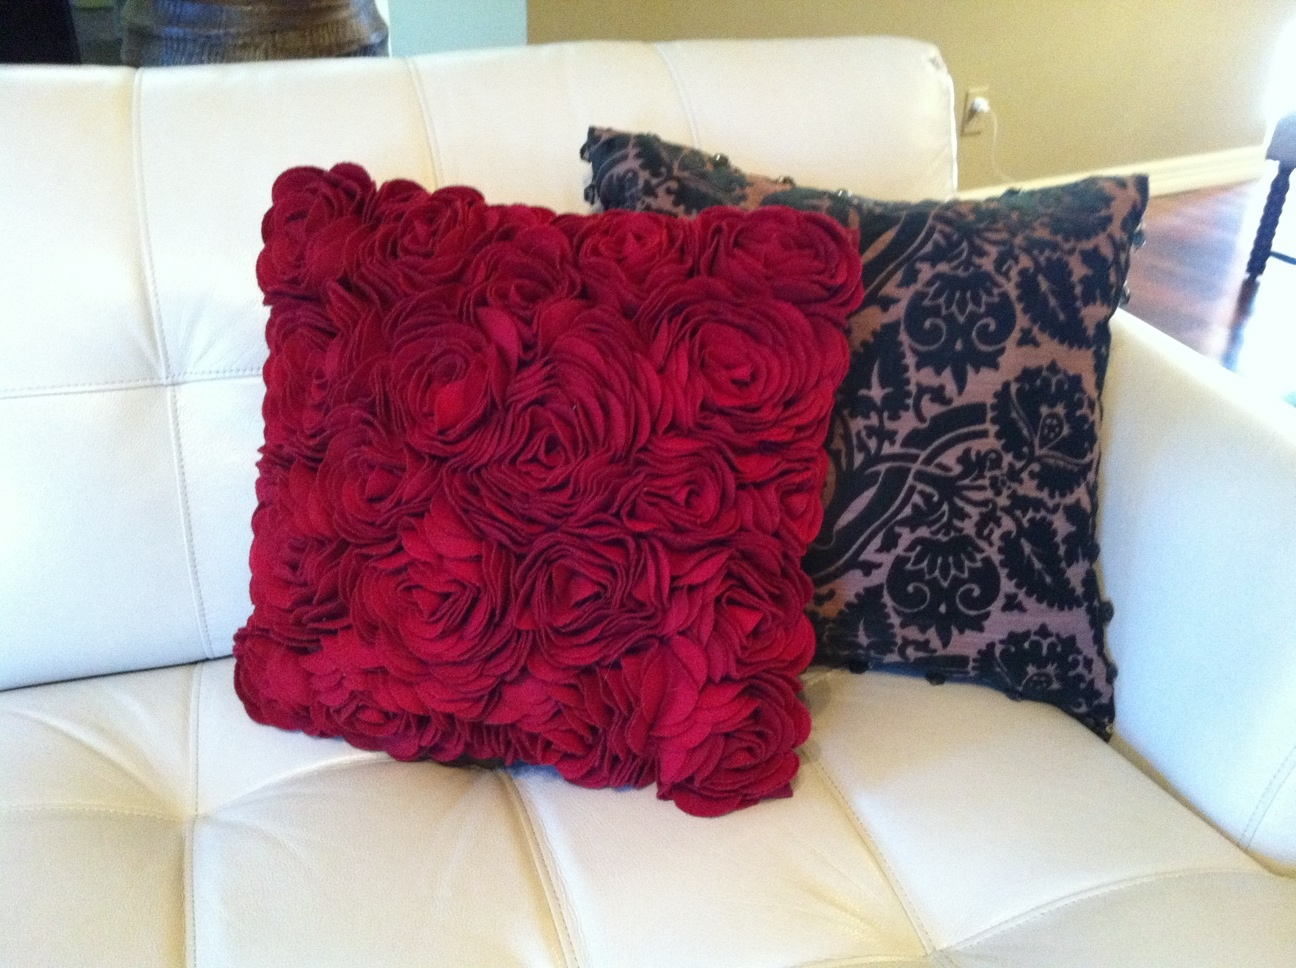 Some red and green pillows on the couch: